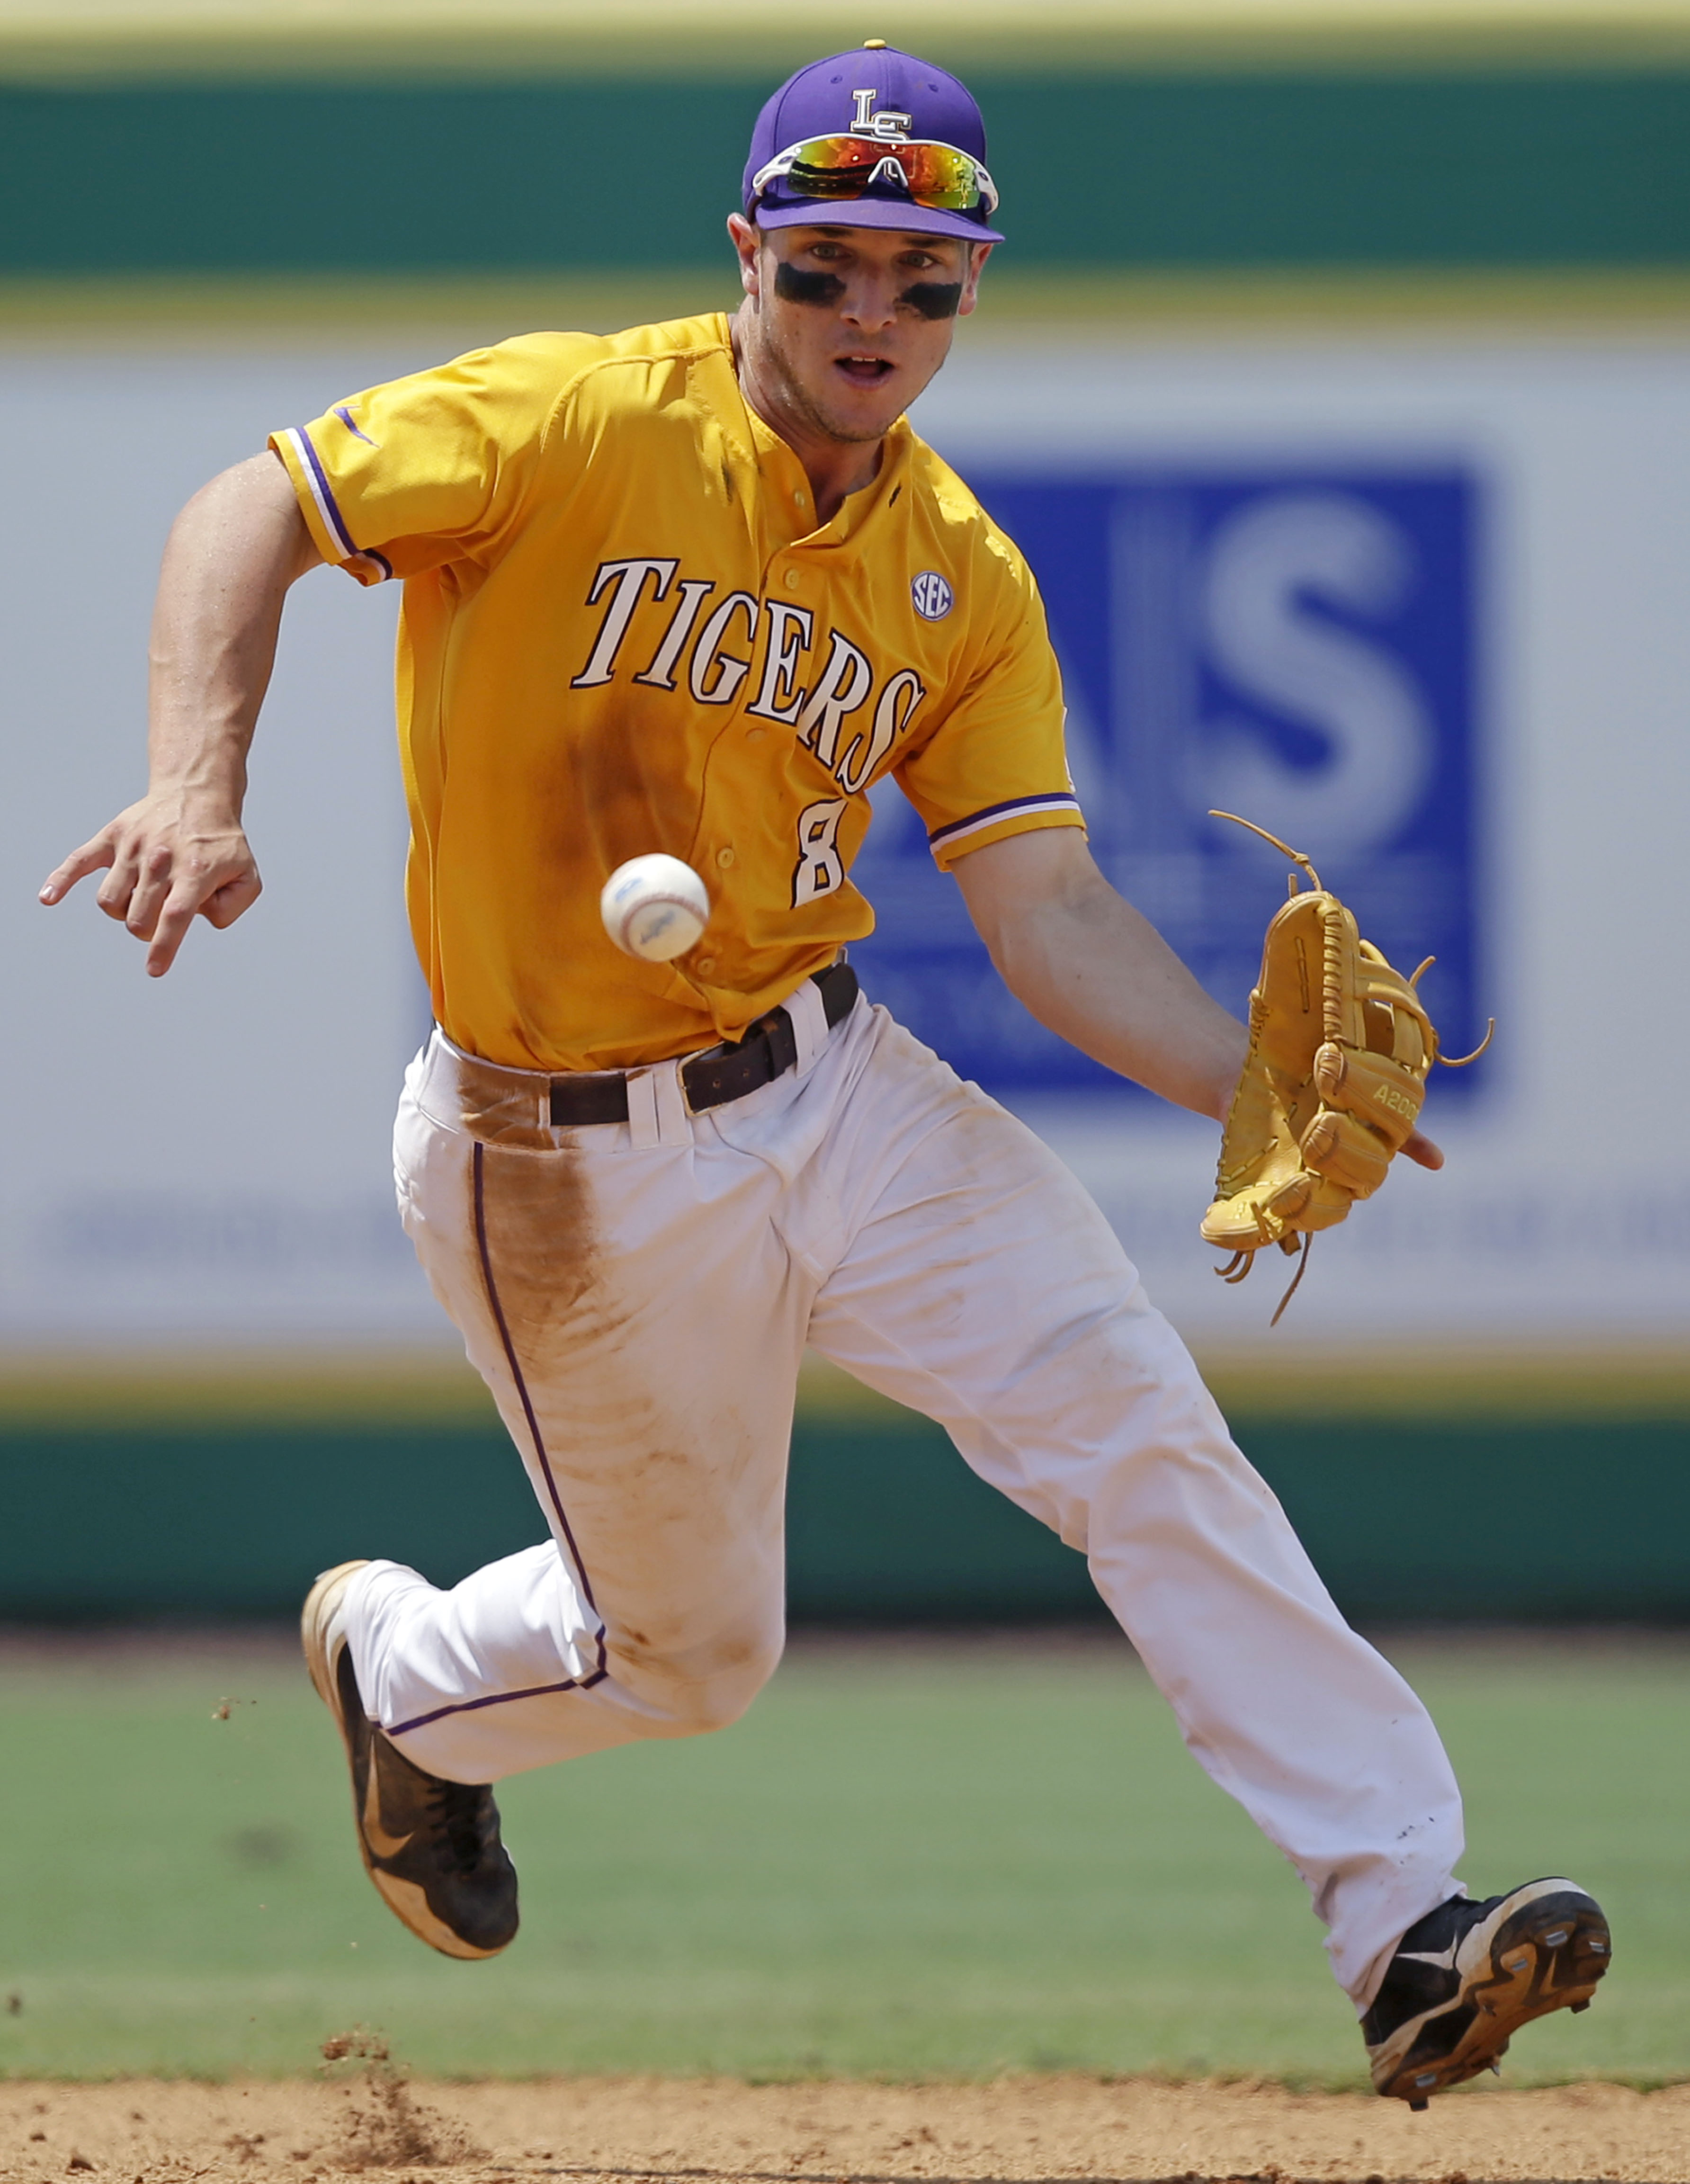 FILE - In this Monday, June 1, 2015, file photo, LSU infielder Alex Bregman (8) fields a grounder hit by UNC Wilmington's Robbie Thorburn in the eighth inning of an NCAA college baseball tournament regional game in Baton Rouge, La. Bergman is among the to